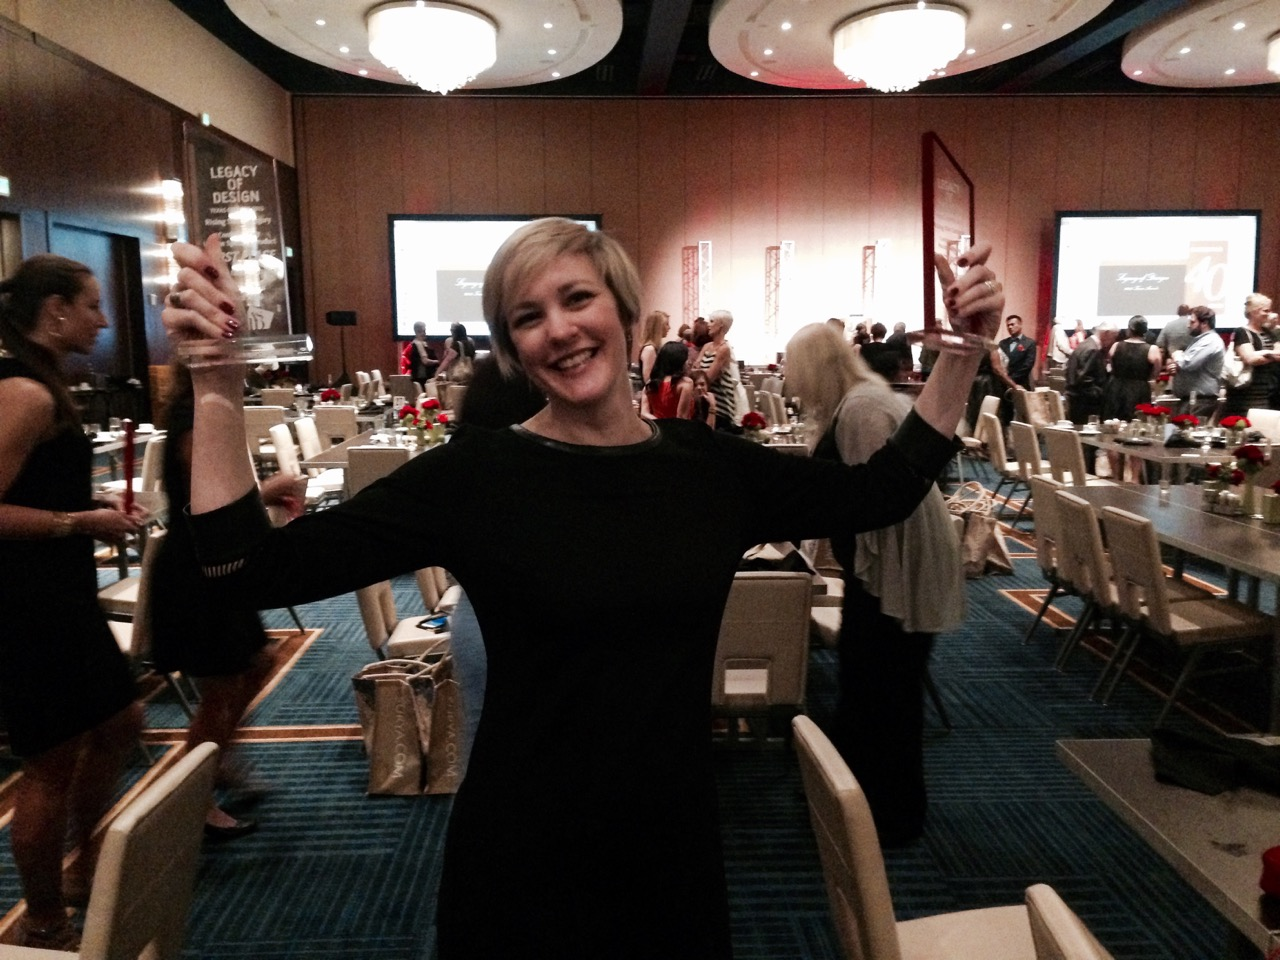 Robin Colton with her Legacy of Design first place trophies.